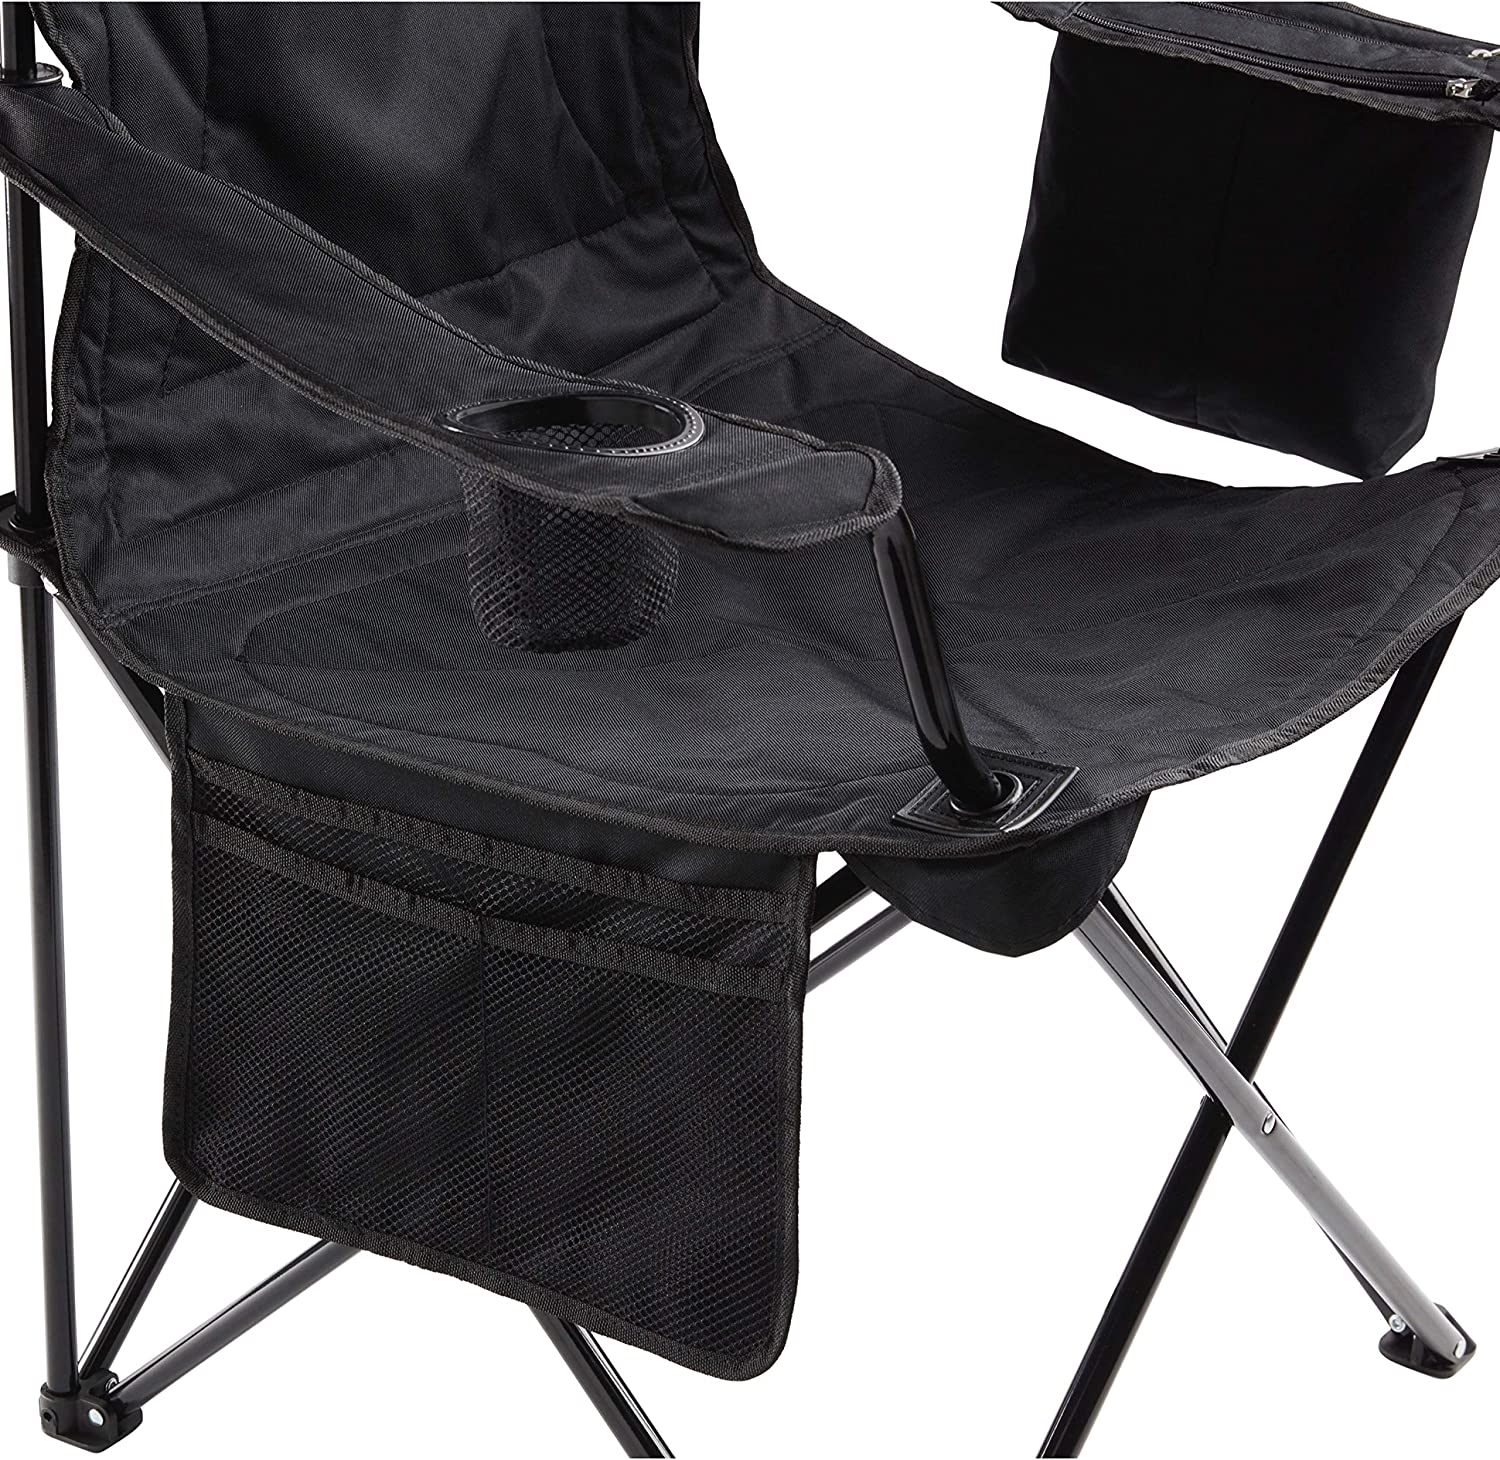 Coleman Camp Chair with 4-Can Cooler | Folding Beach Chair with Built In Drinks Cooler | Portable Quad Chair with Armrest Cooler for Tailgating, Camping & Outdoors : Camping Chair : Sports & Outdoors